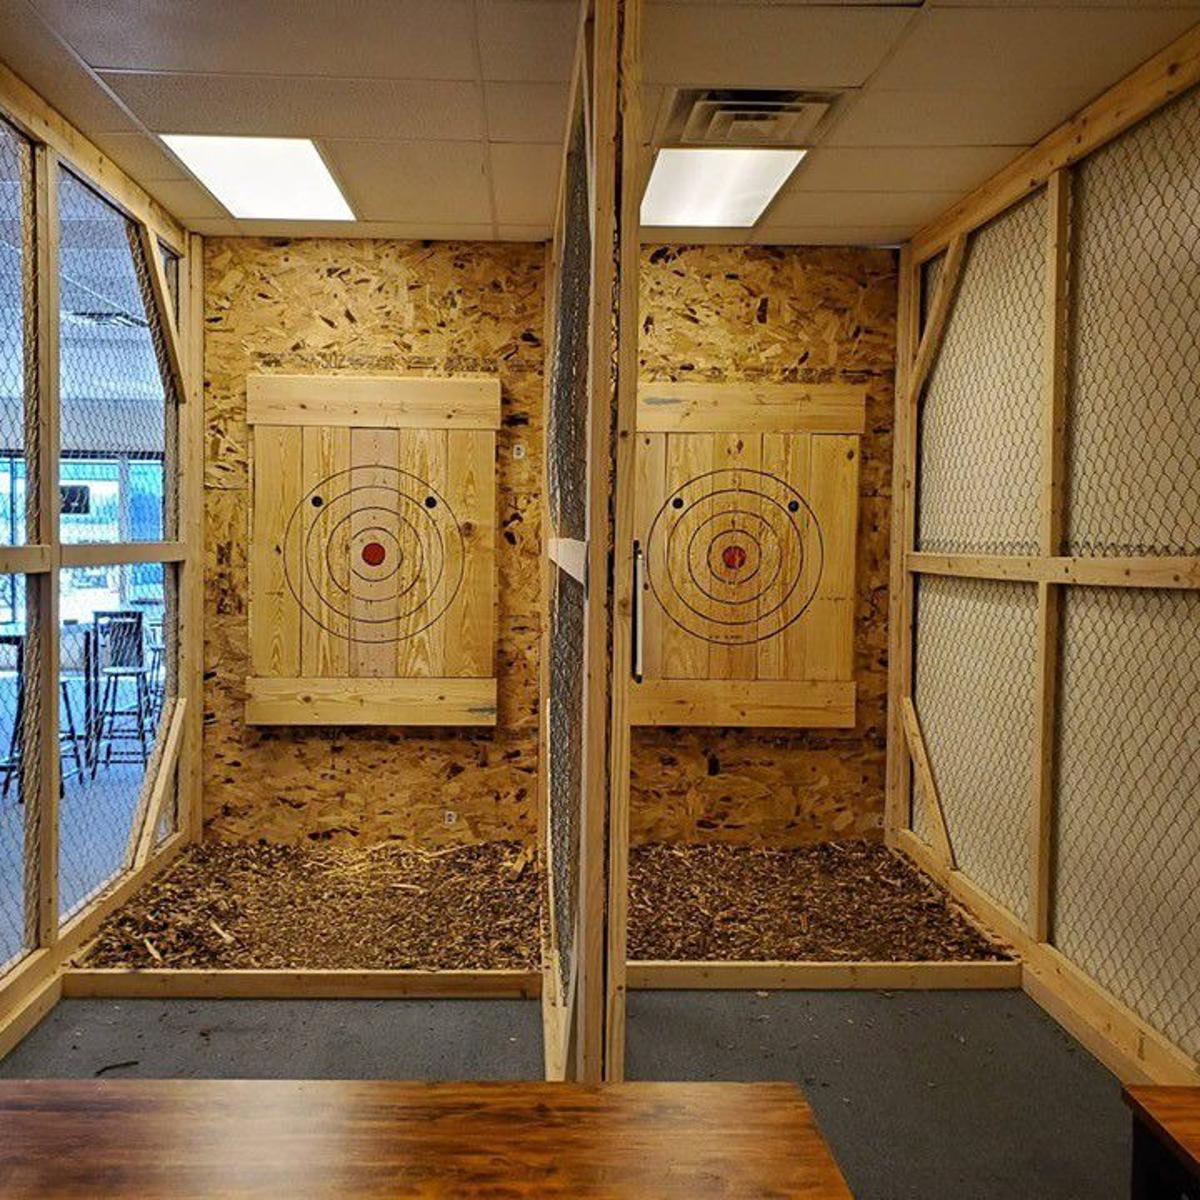 What S Not To Love About Throwing Weapons Hatchet Throwing Comes To Region Northwest Indiana Business Headlines Nwitimes Com